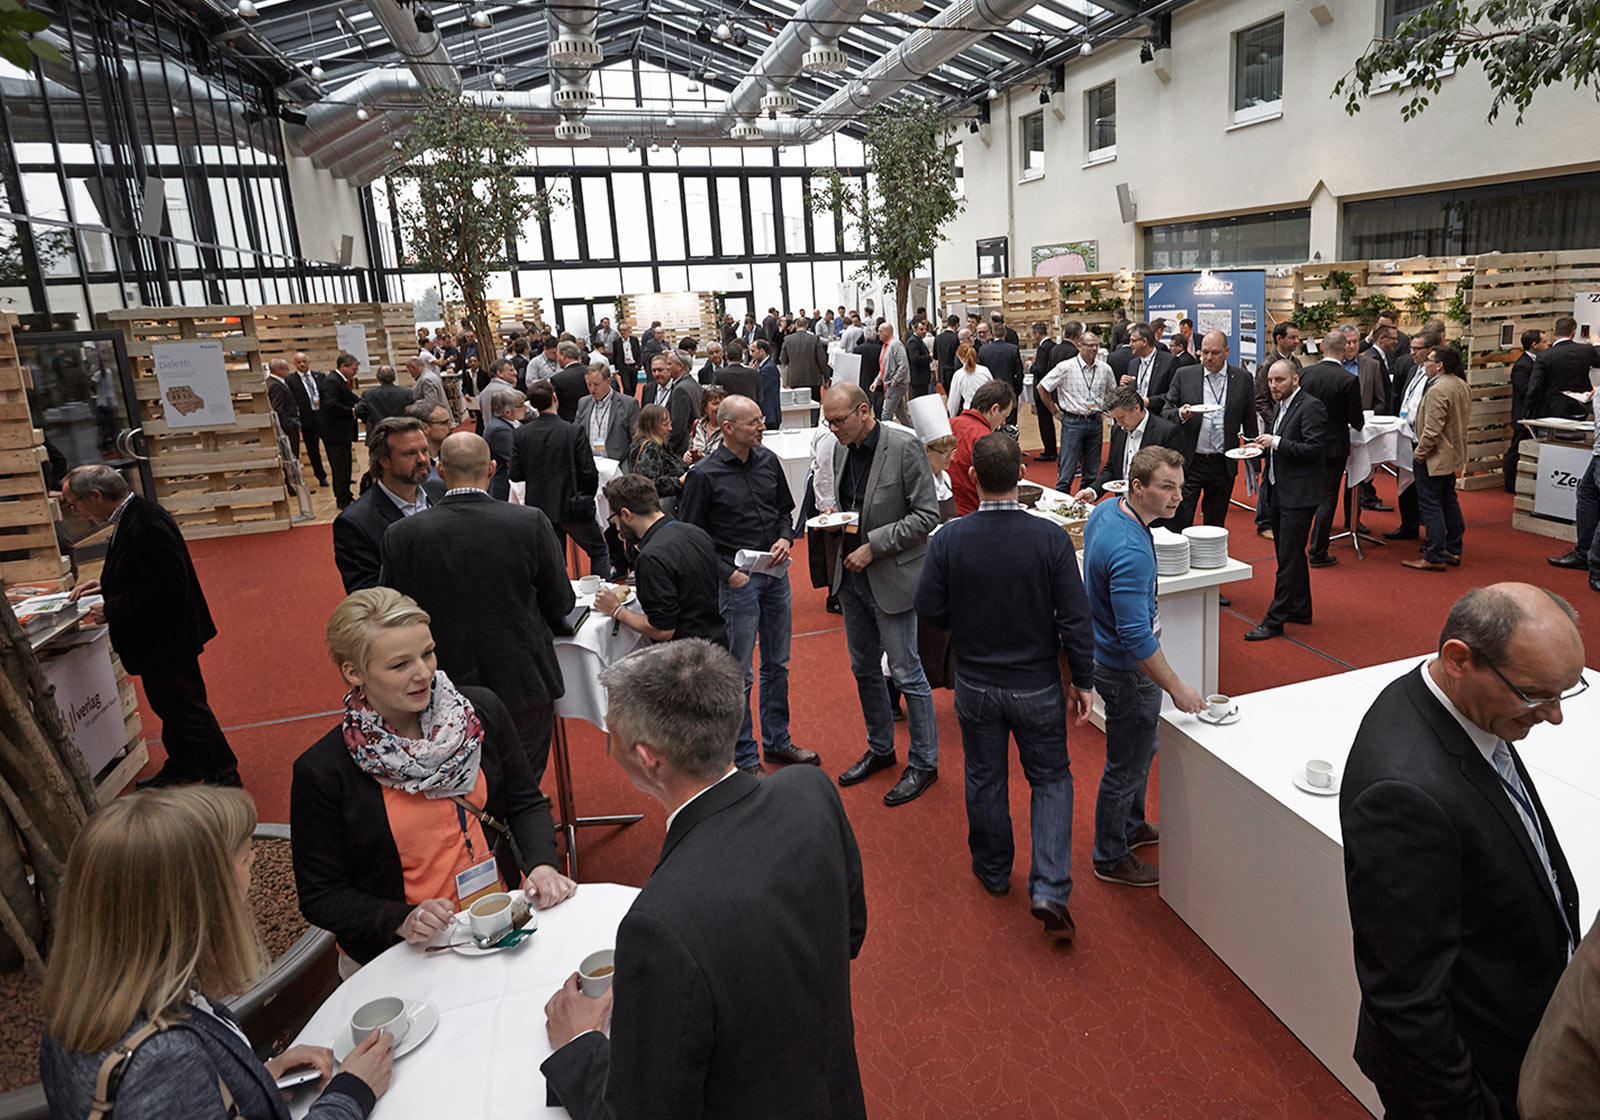 Around 500 guests used the event as an opportunity to network. Photo: DAIKIN